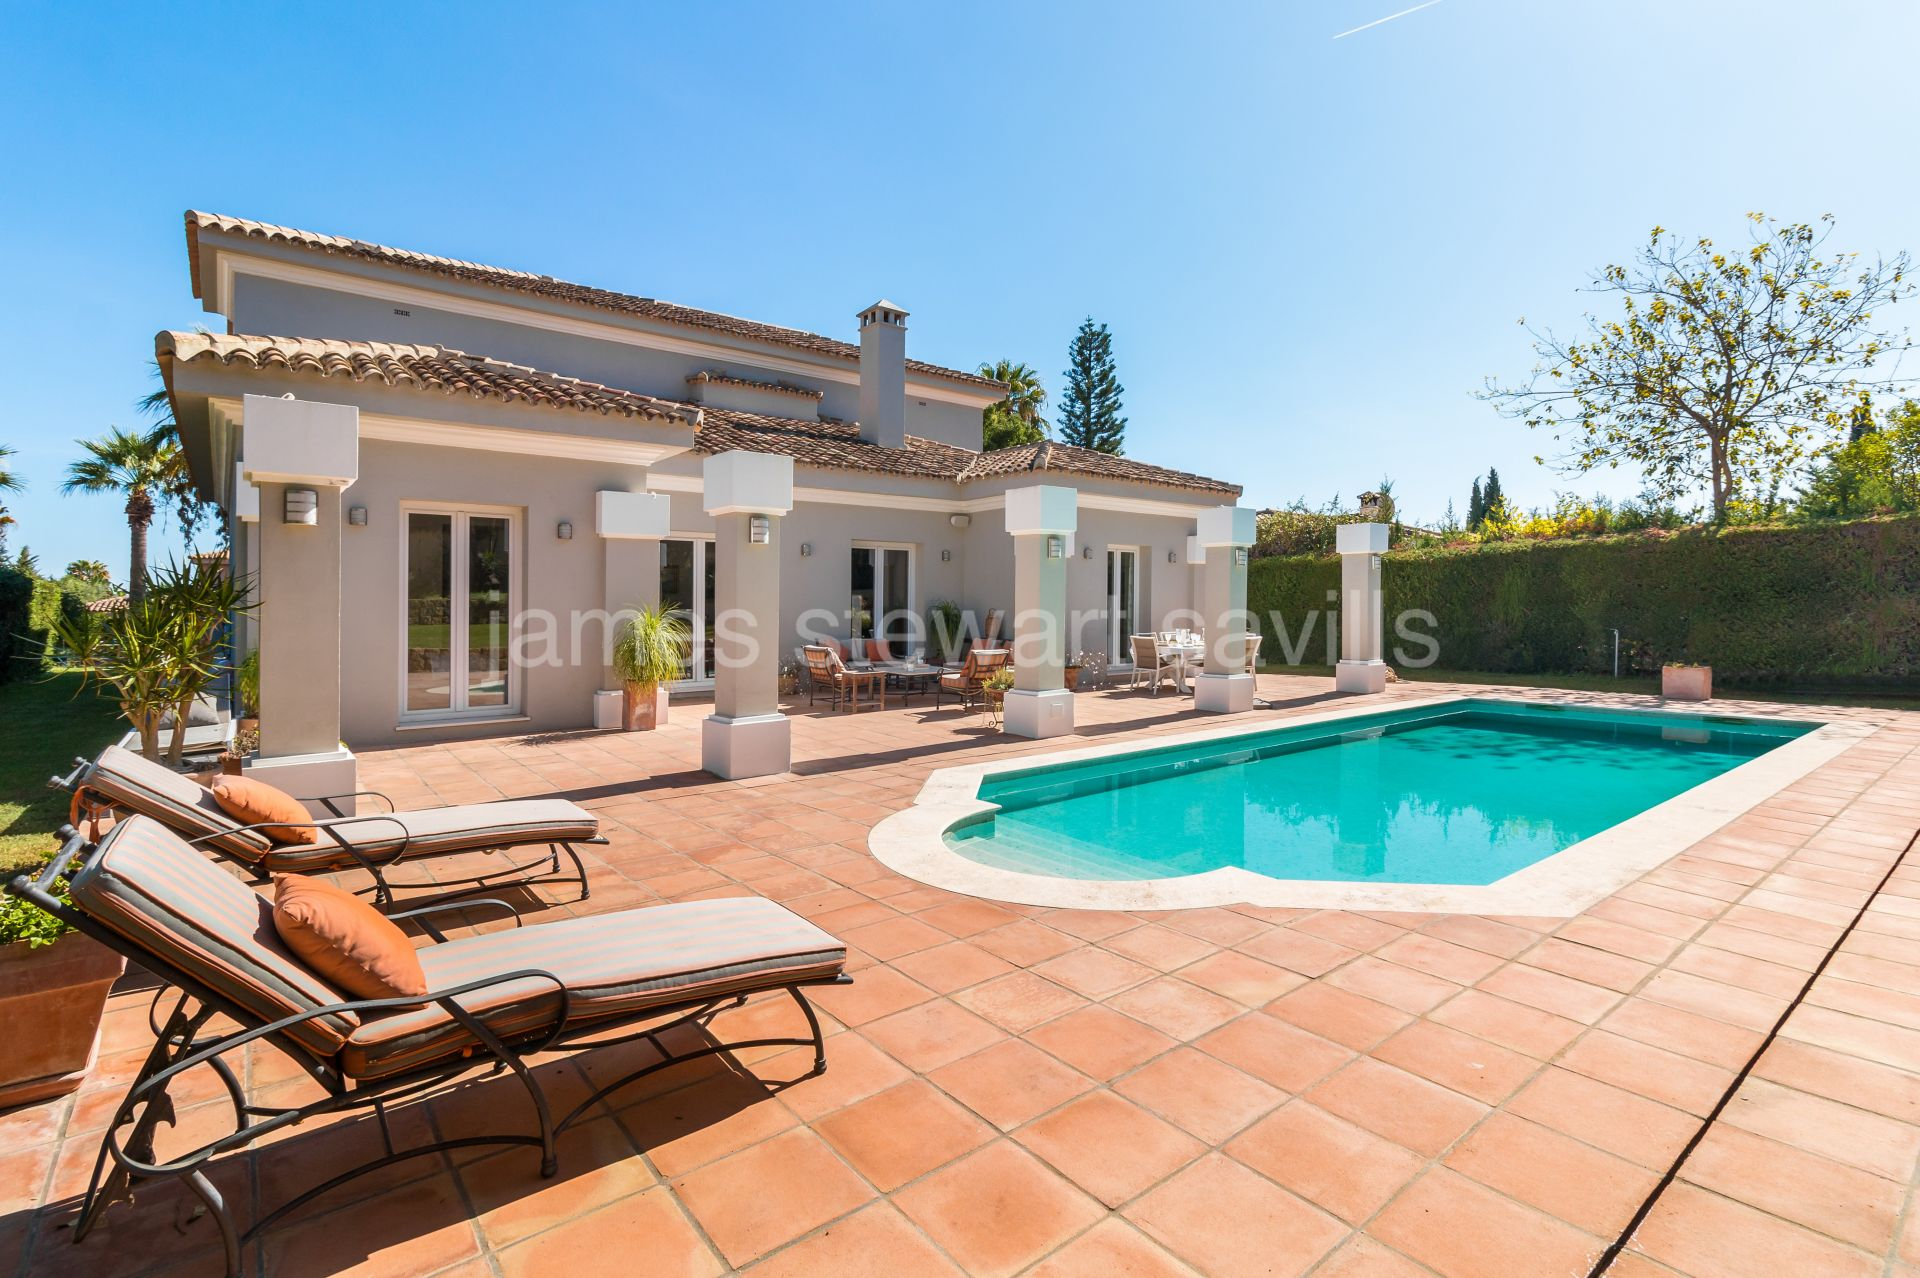 Villa for sale in Sotogrande Costa Central, Sotogrande